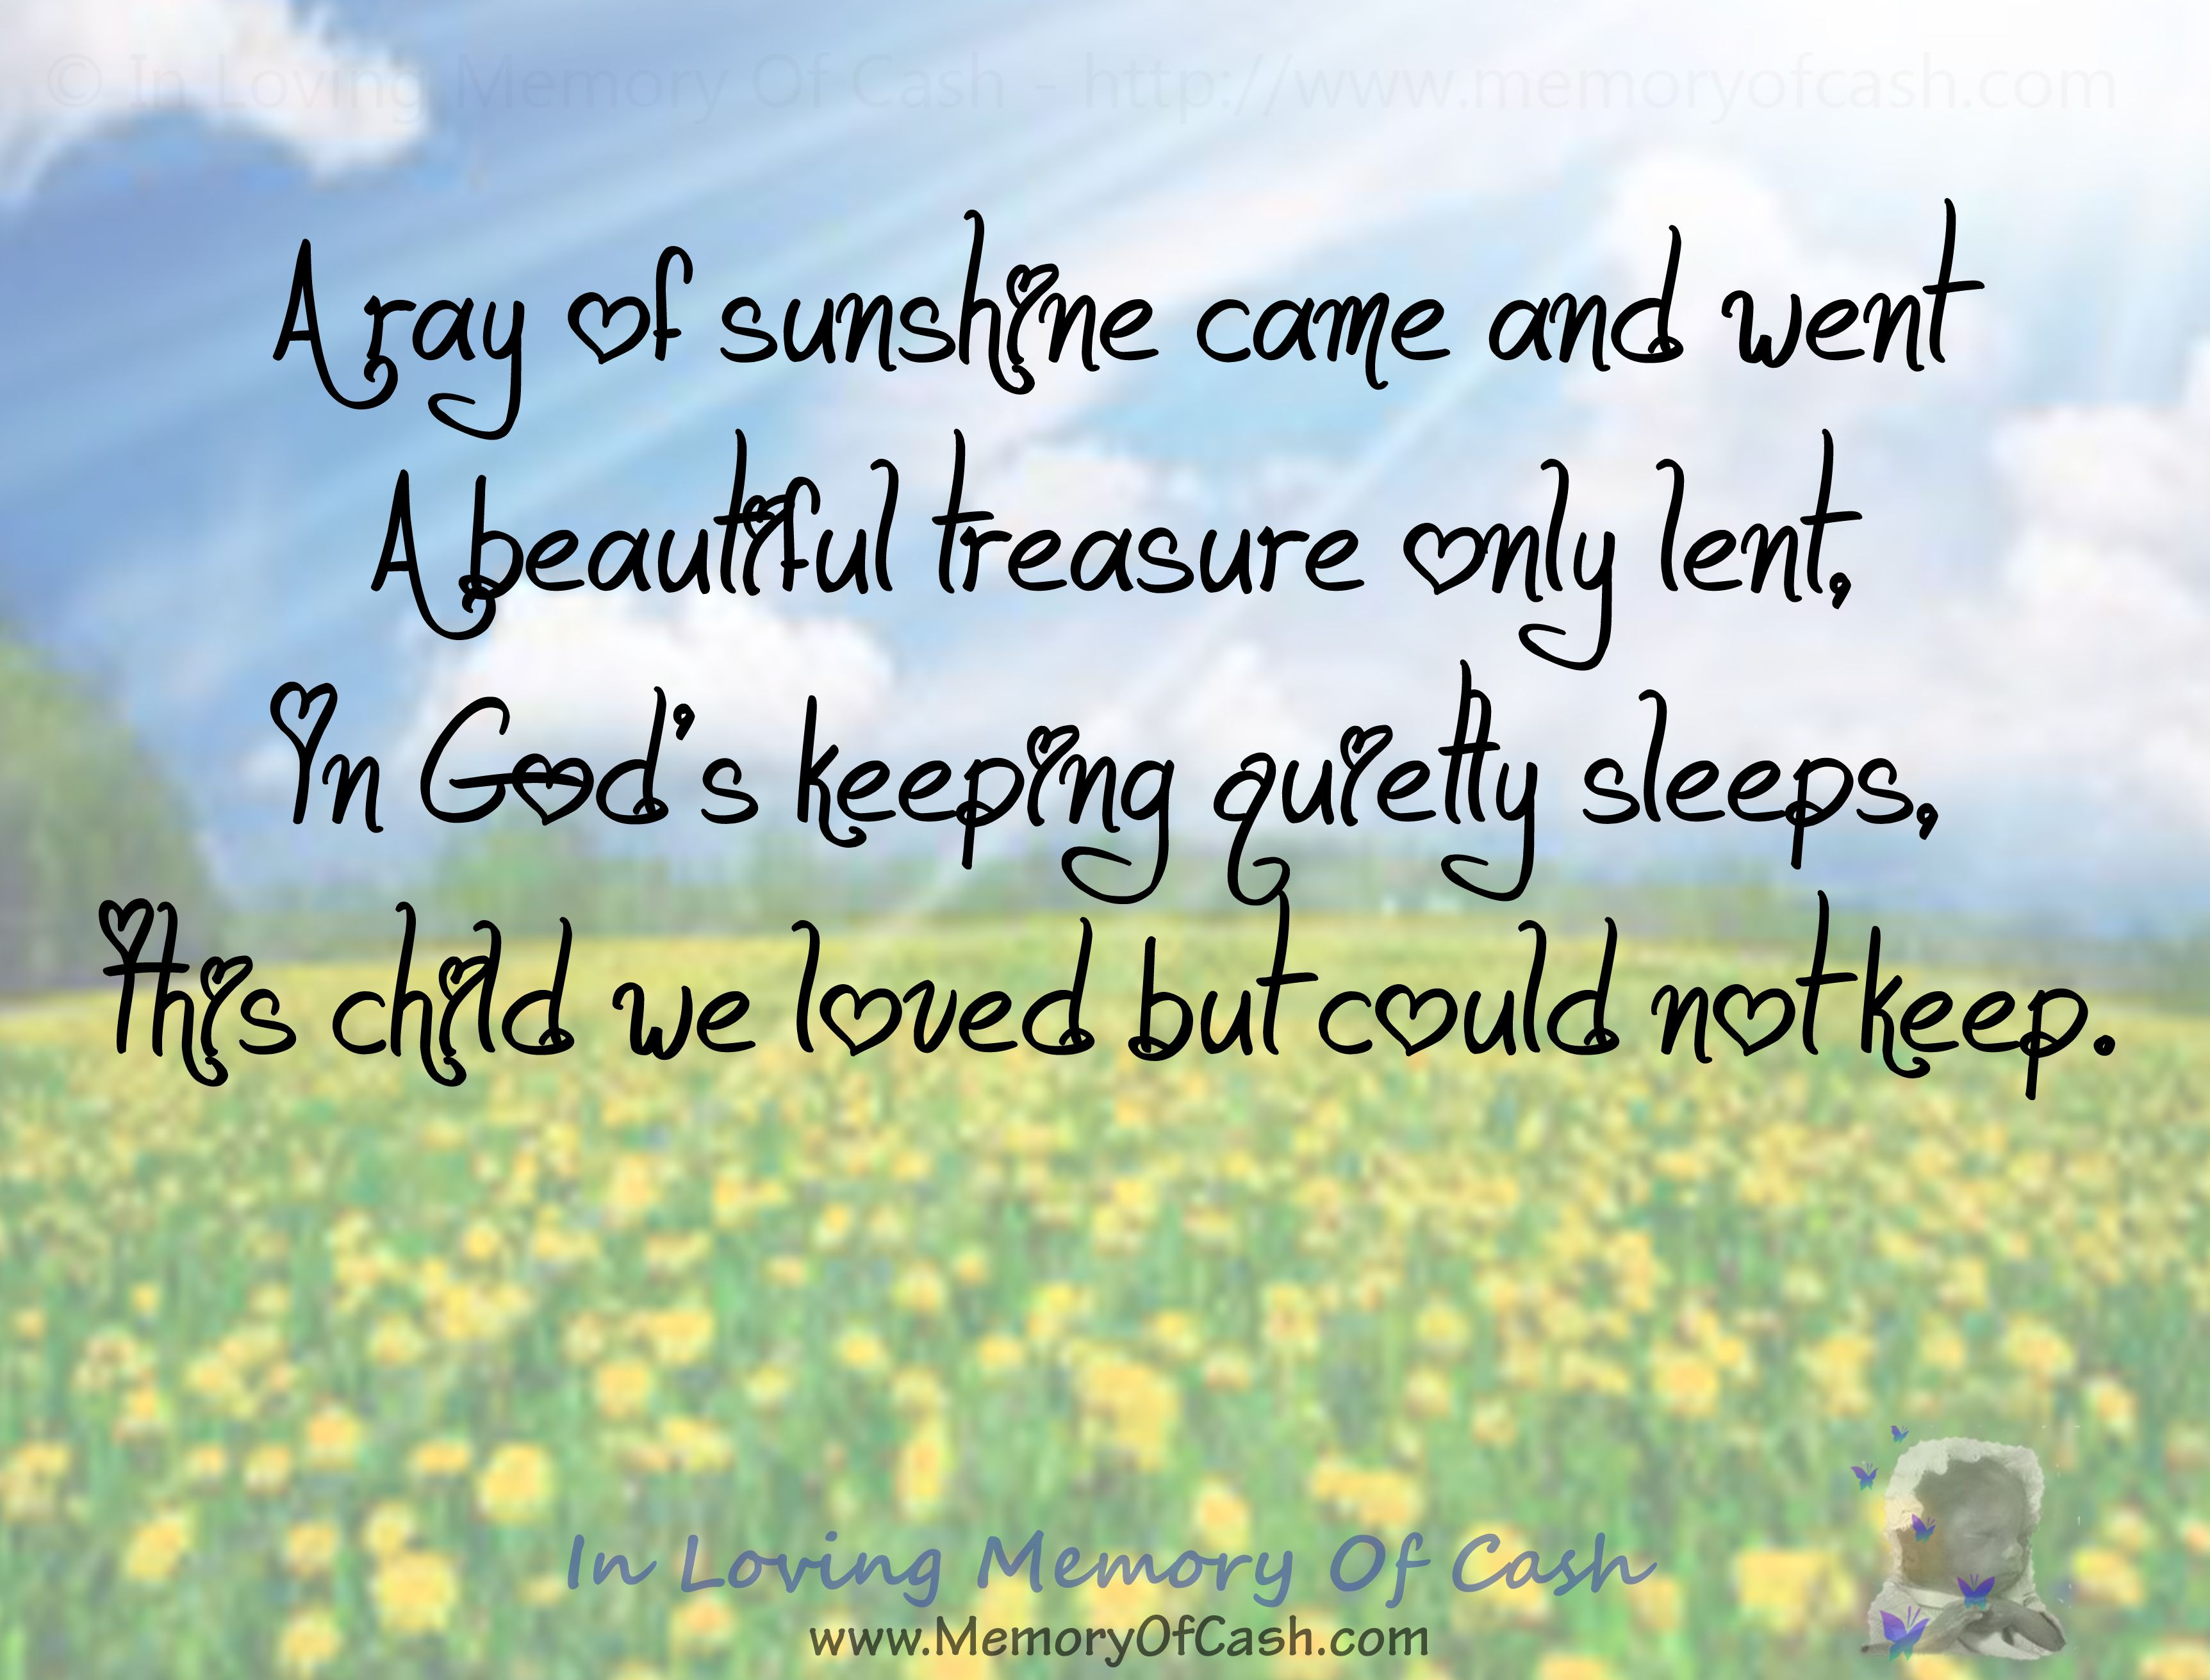 In Loving Memory Quotes A Ray Of Sunshine Came And Went A Beautiful Treasure Only Lent In